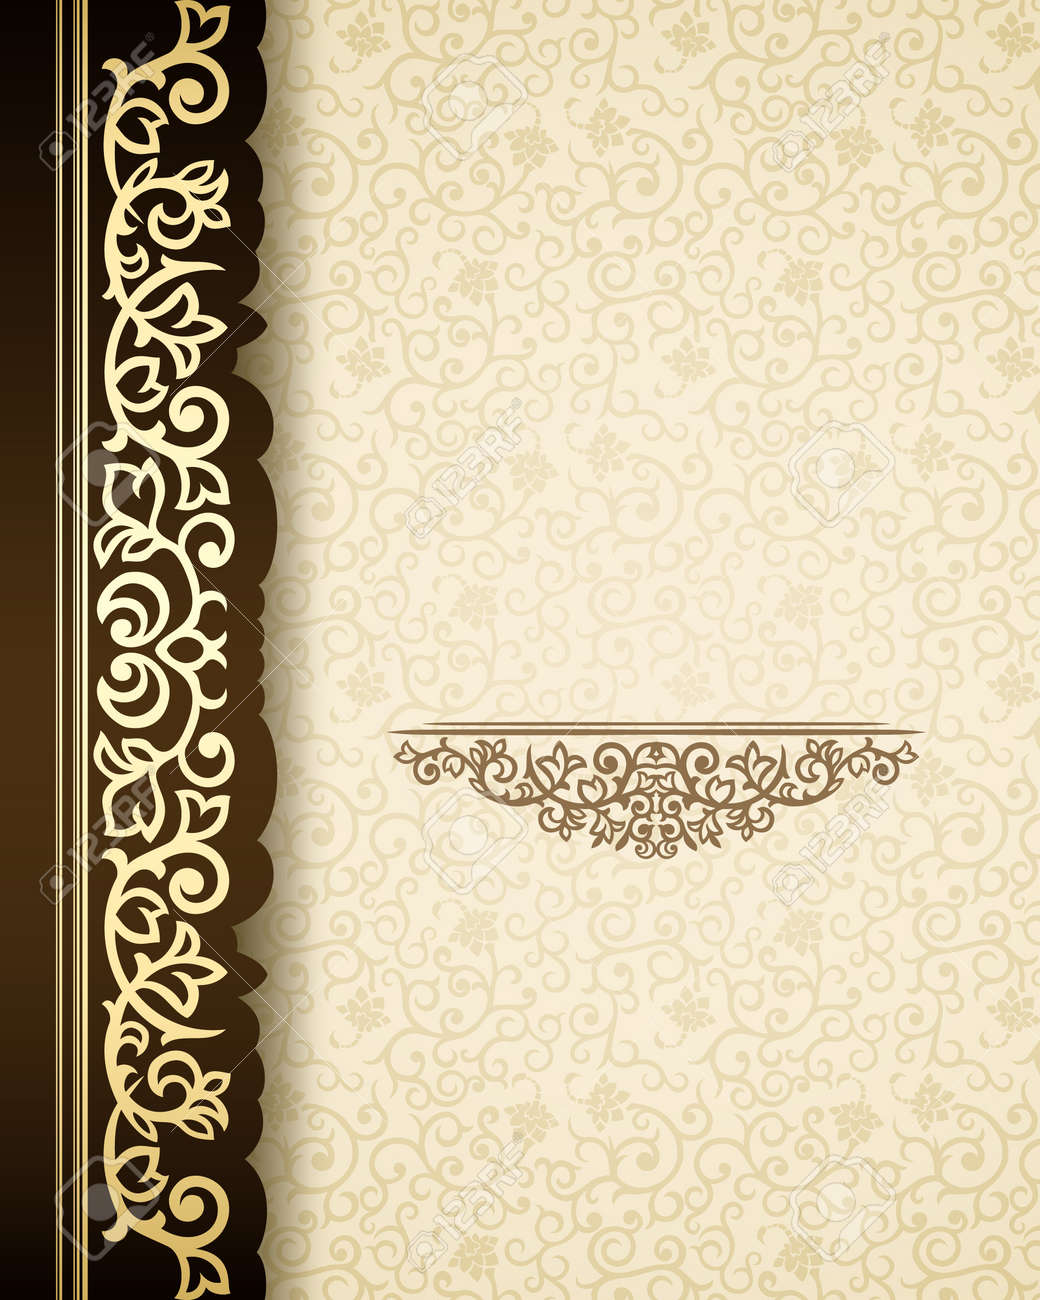 Vintage background with golden border and retro pattern Stock Vector - 21800361